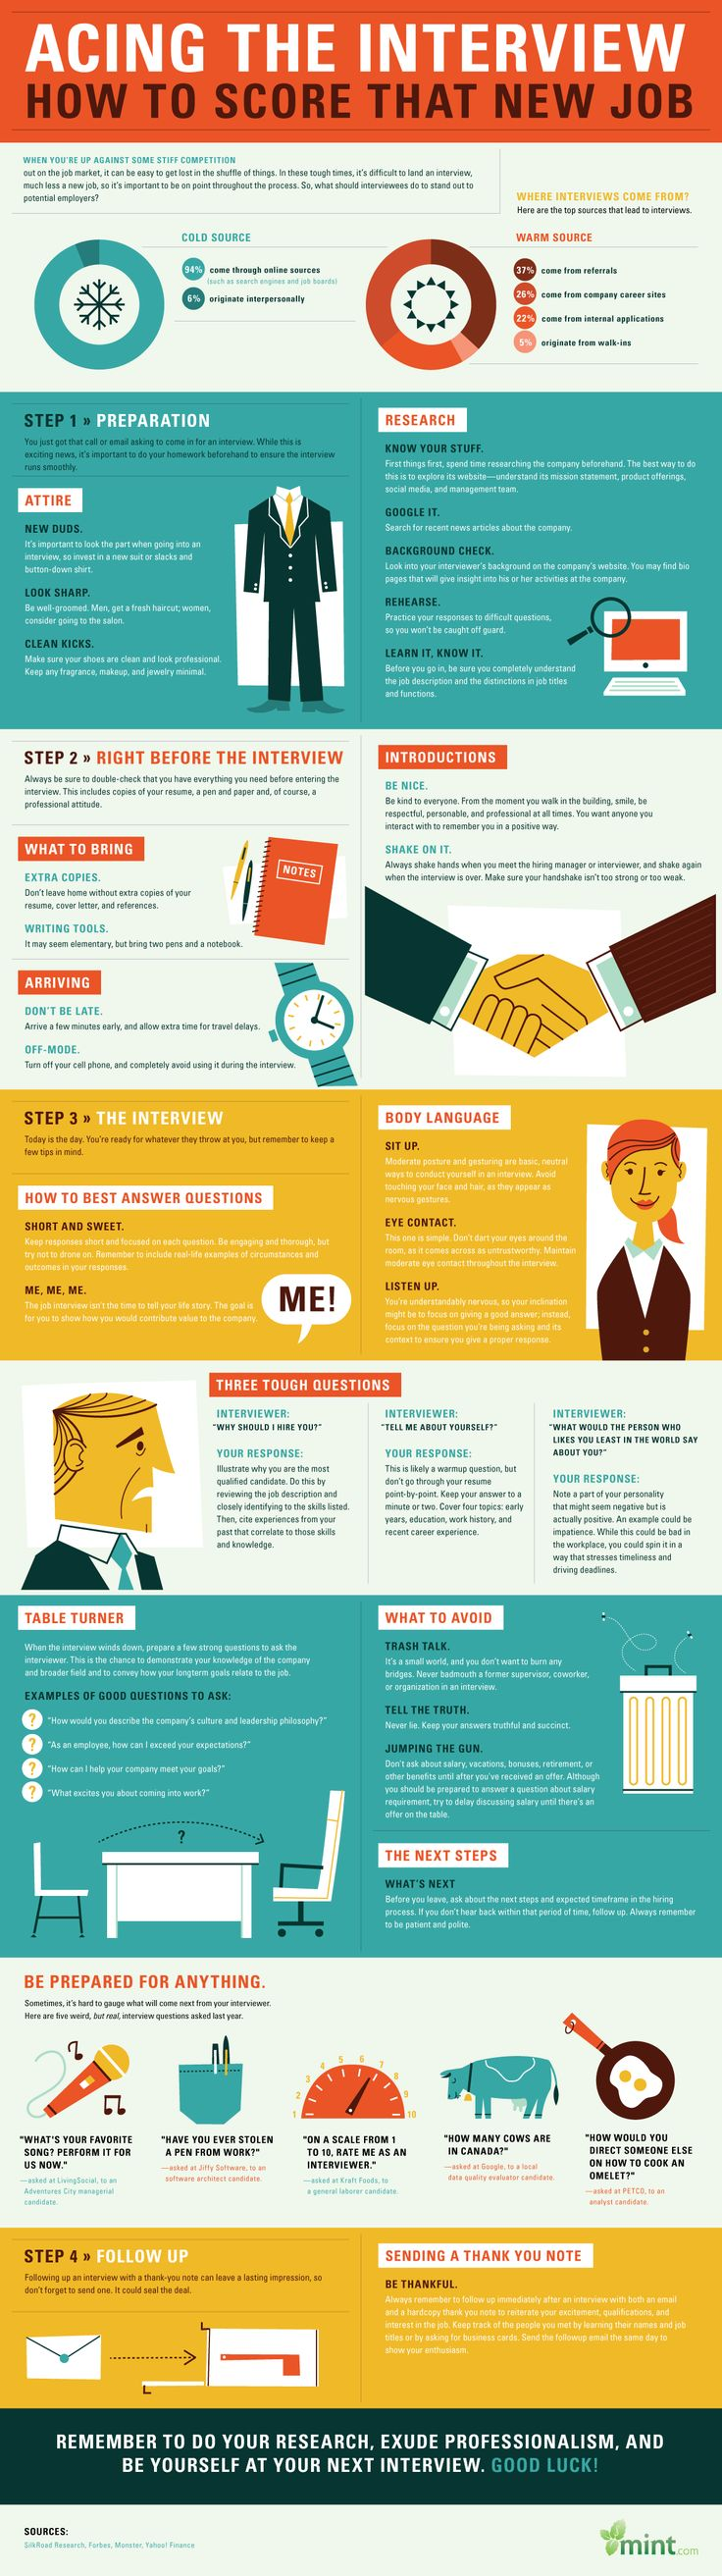 66 best images about Interview tips on Pinterest | Interview, Body ...